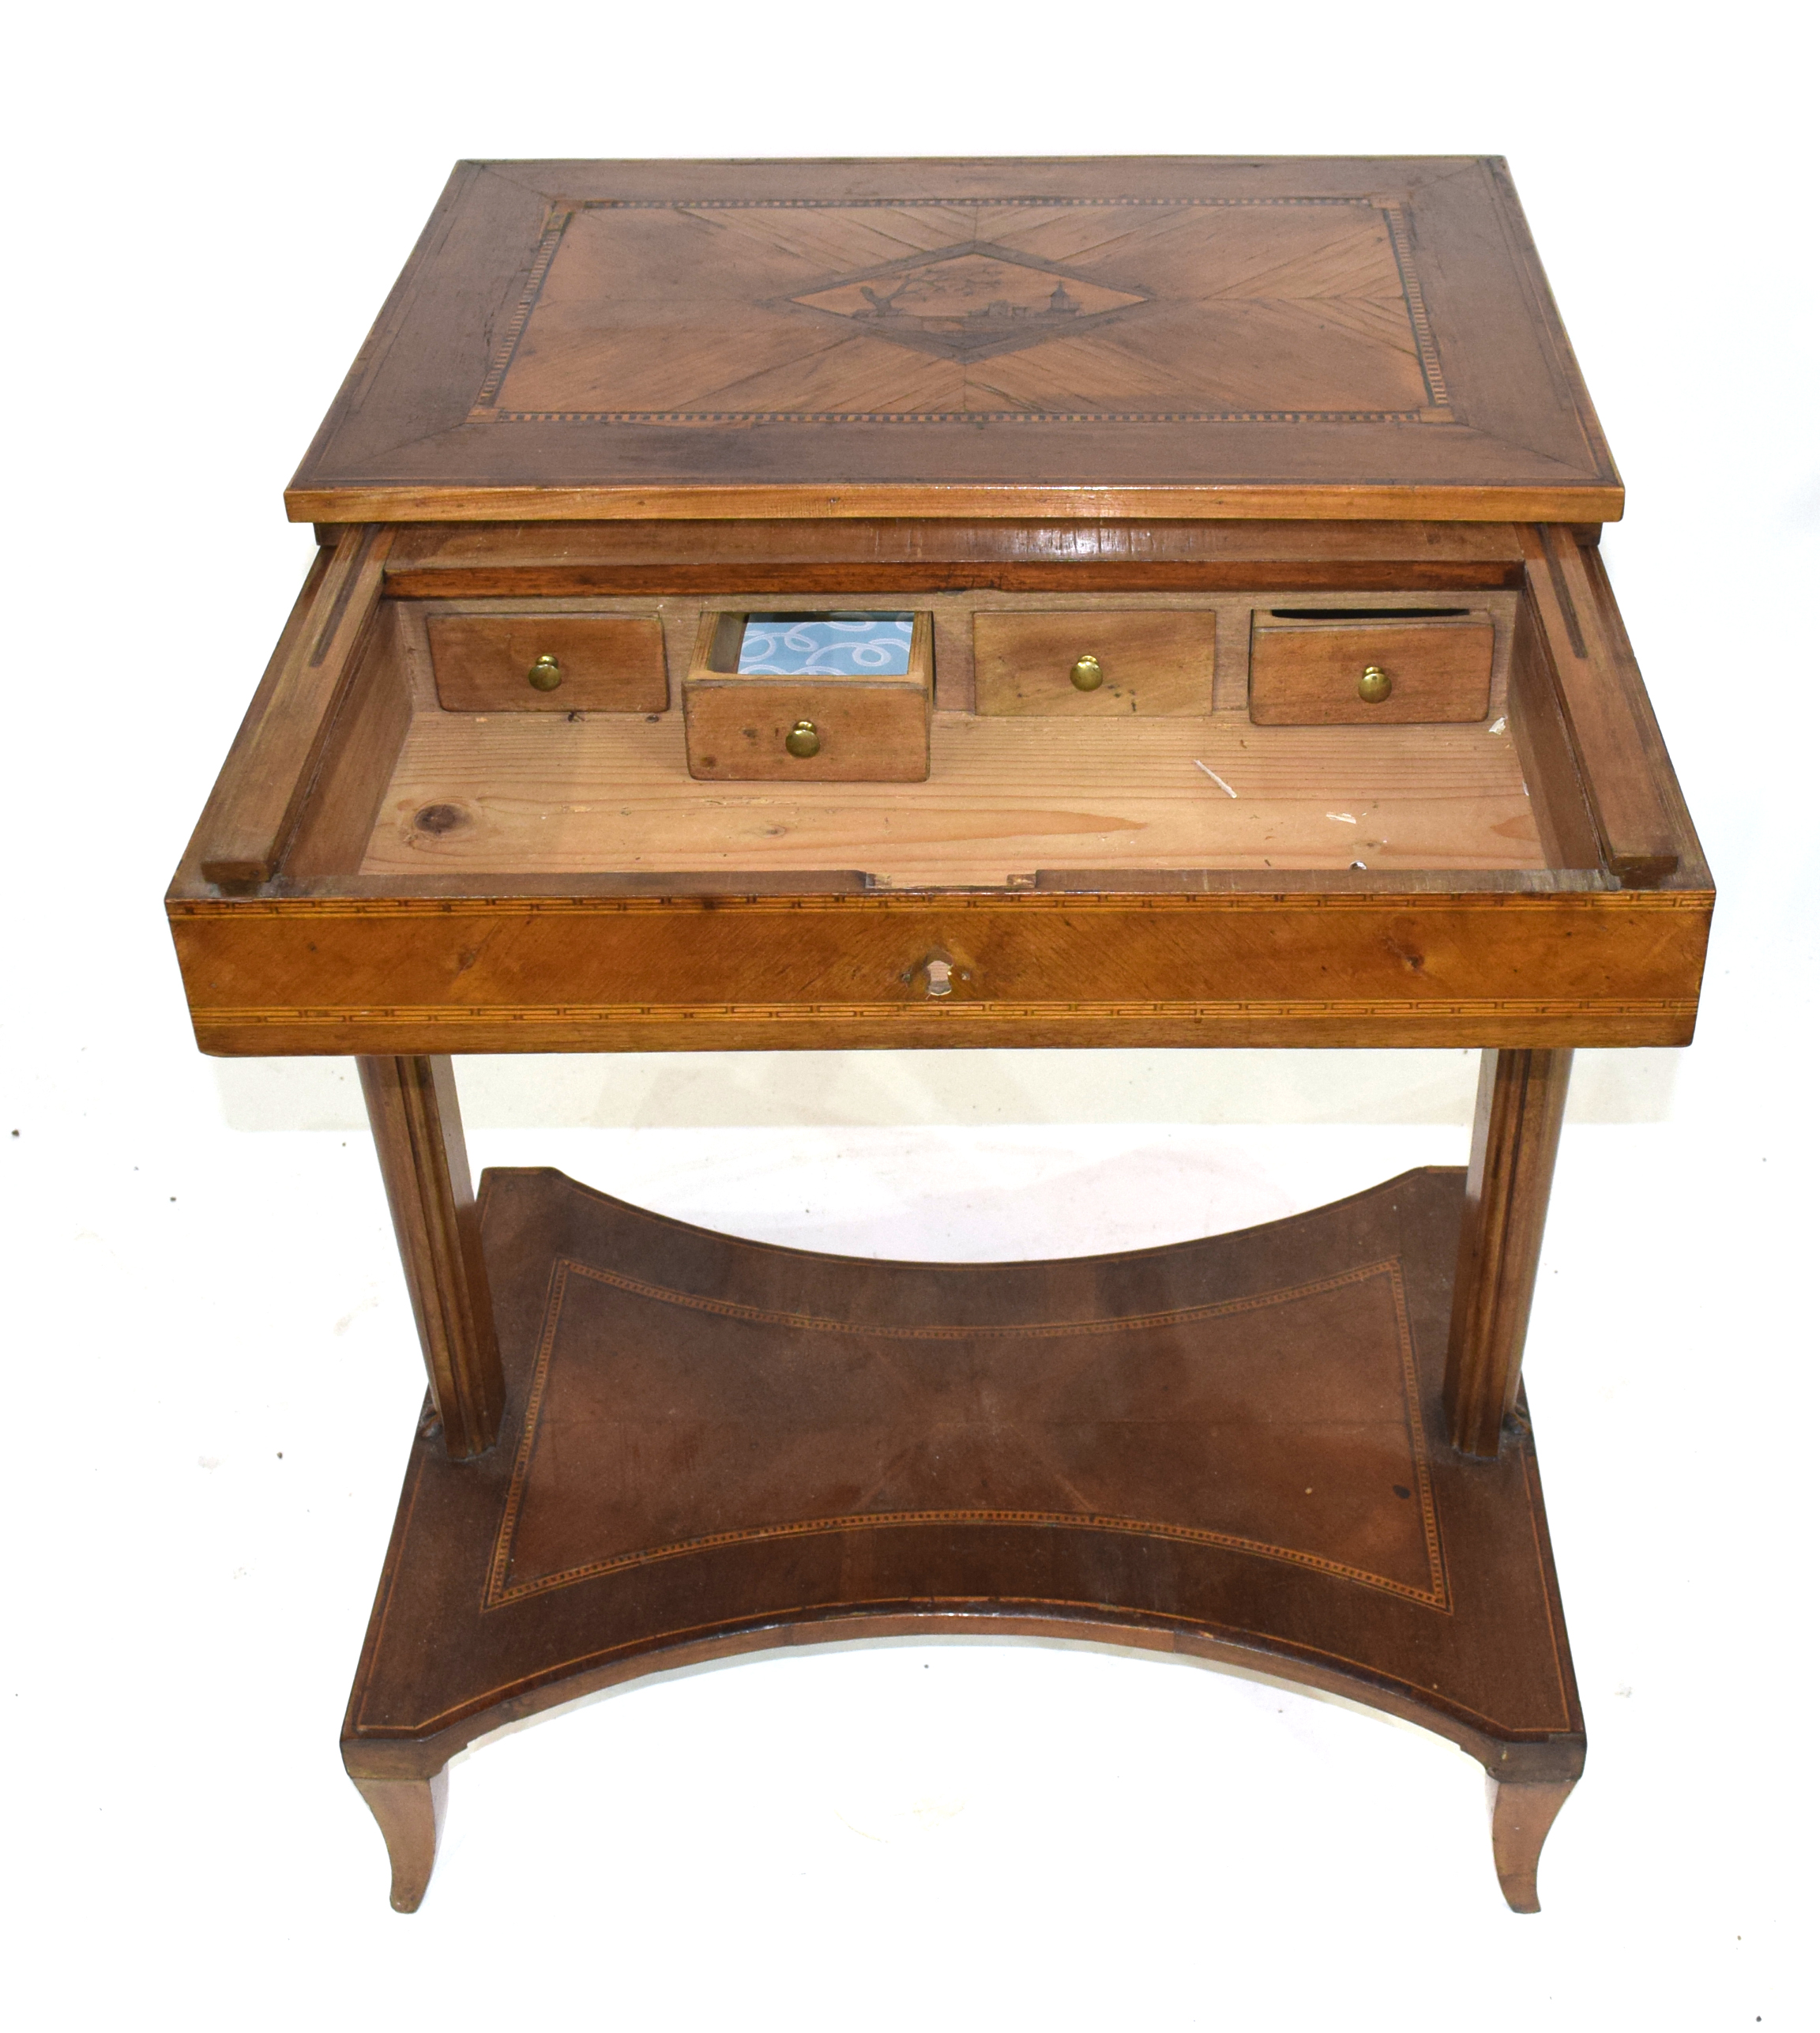 19th century Continental metamorphic desk or work table, the inlaid sliding top opening to reveal - Image 3 of 4